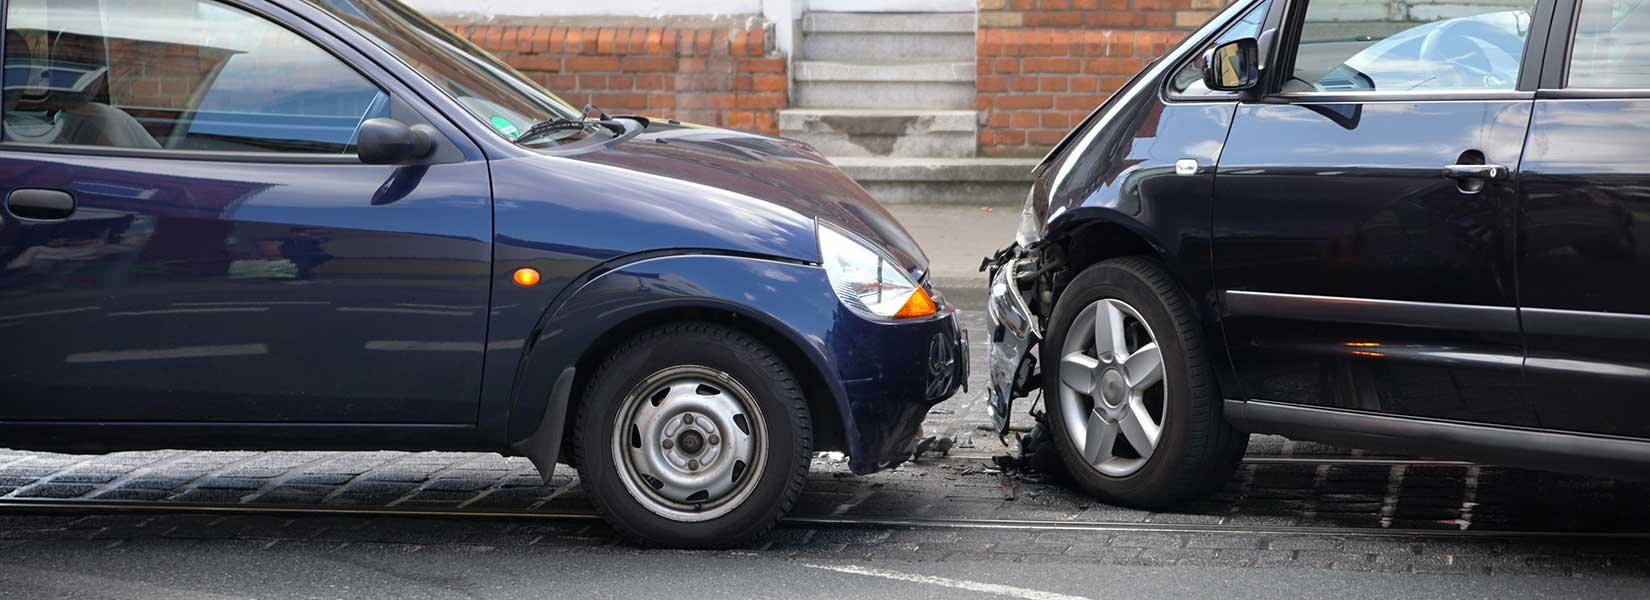 Calling the Police After a Car Accident | Baton Rouge Car Accident Lawyer